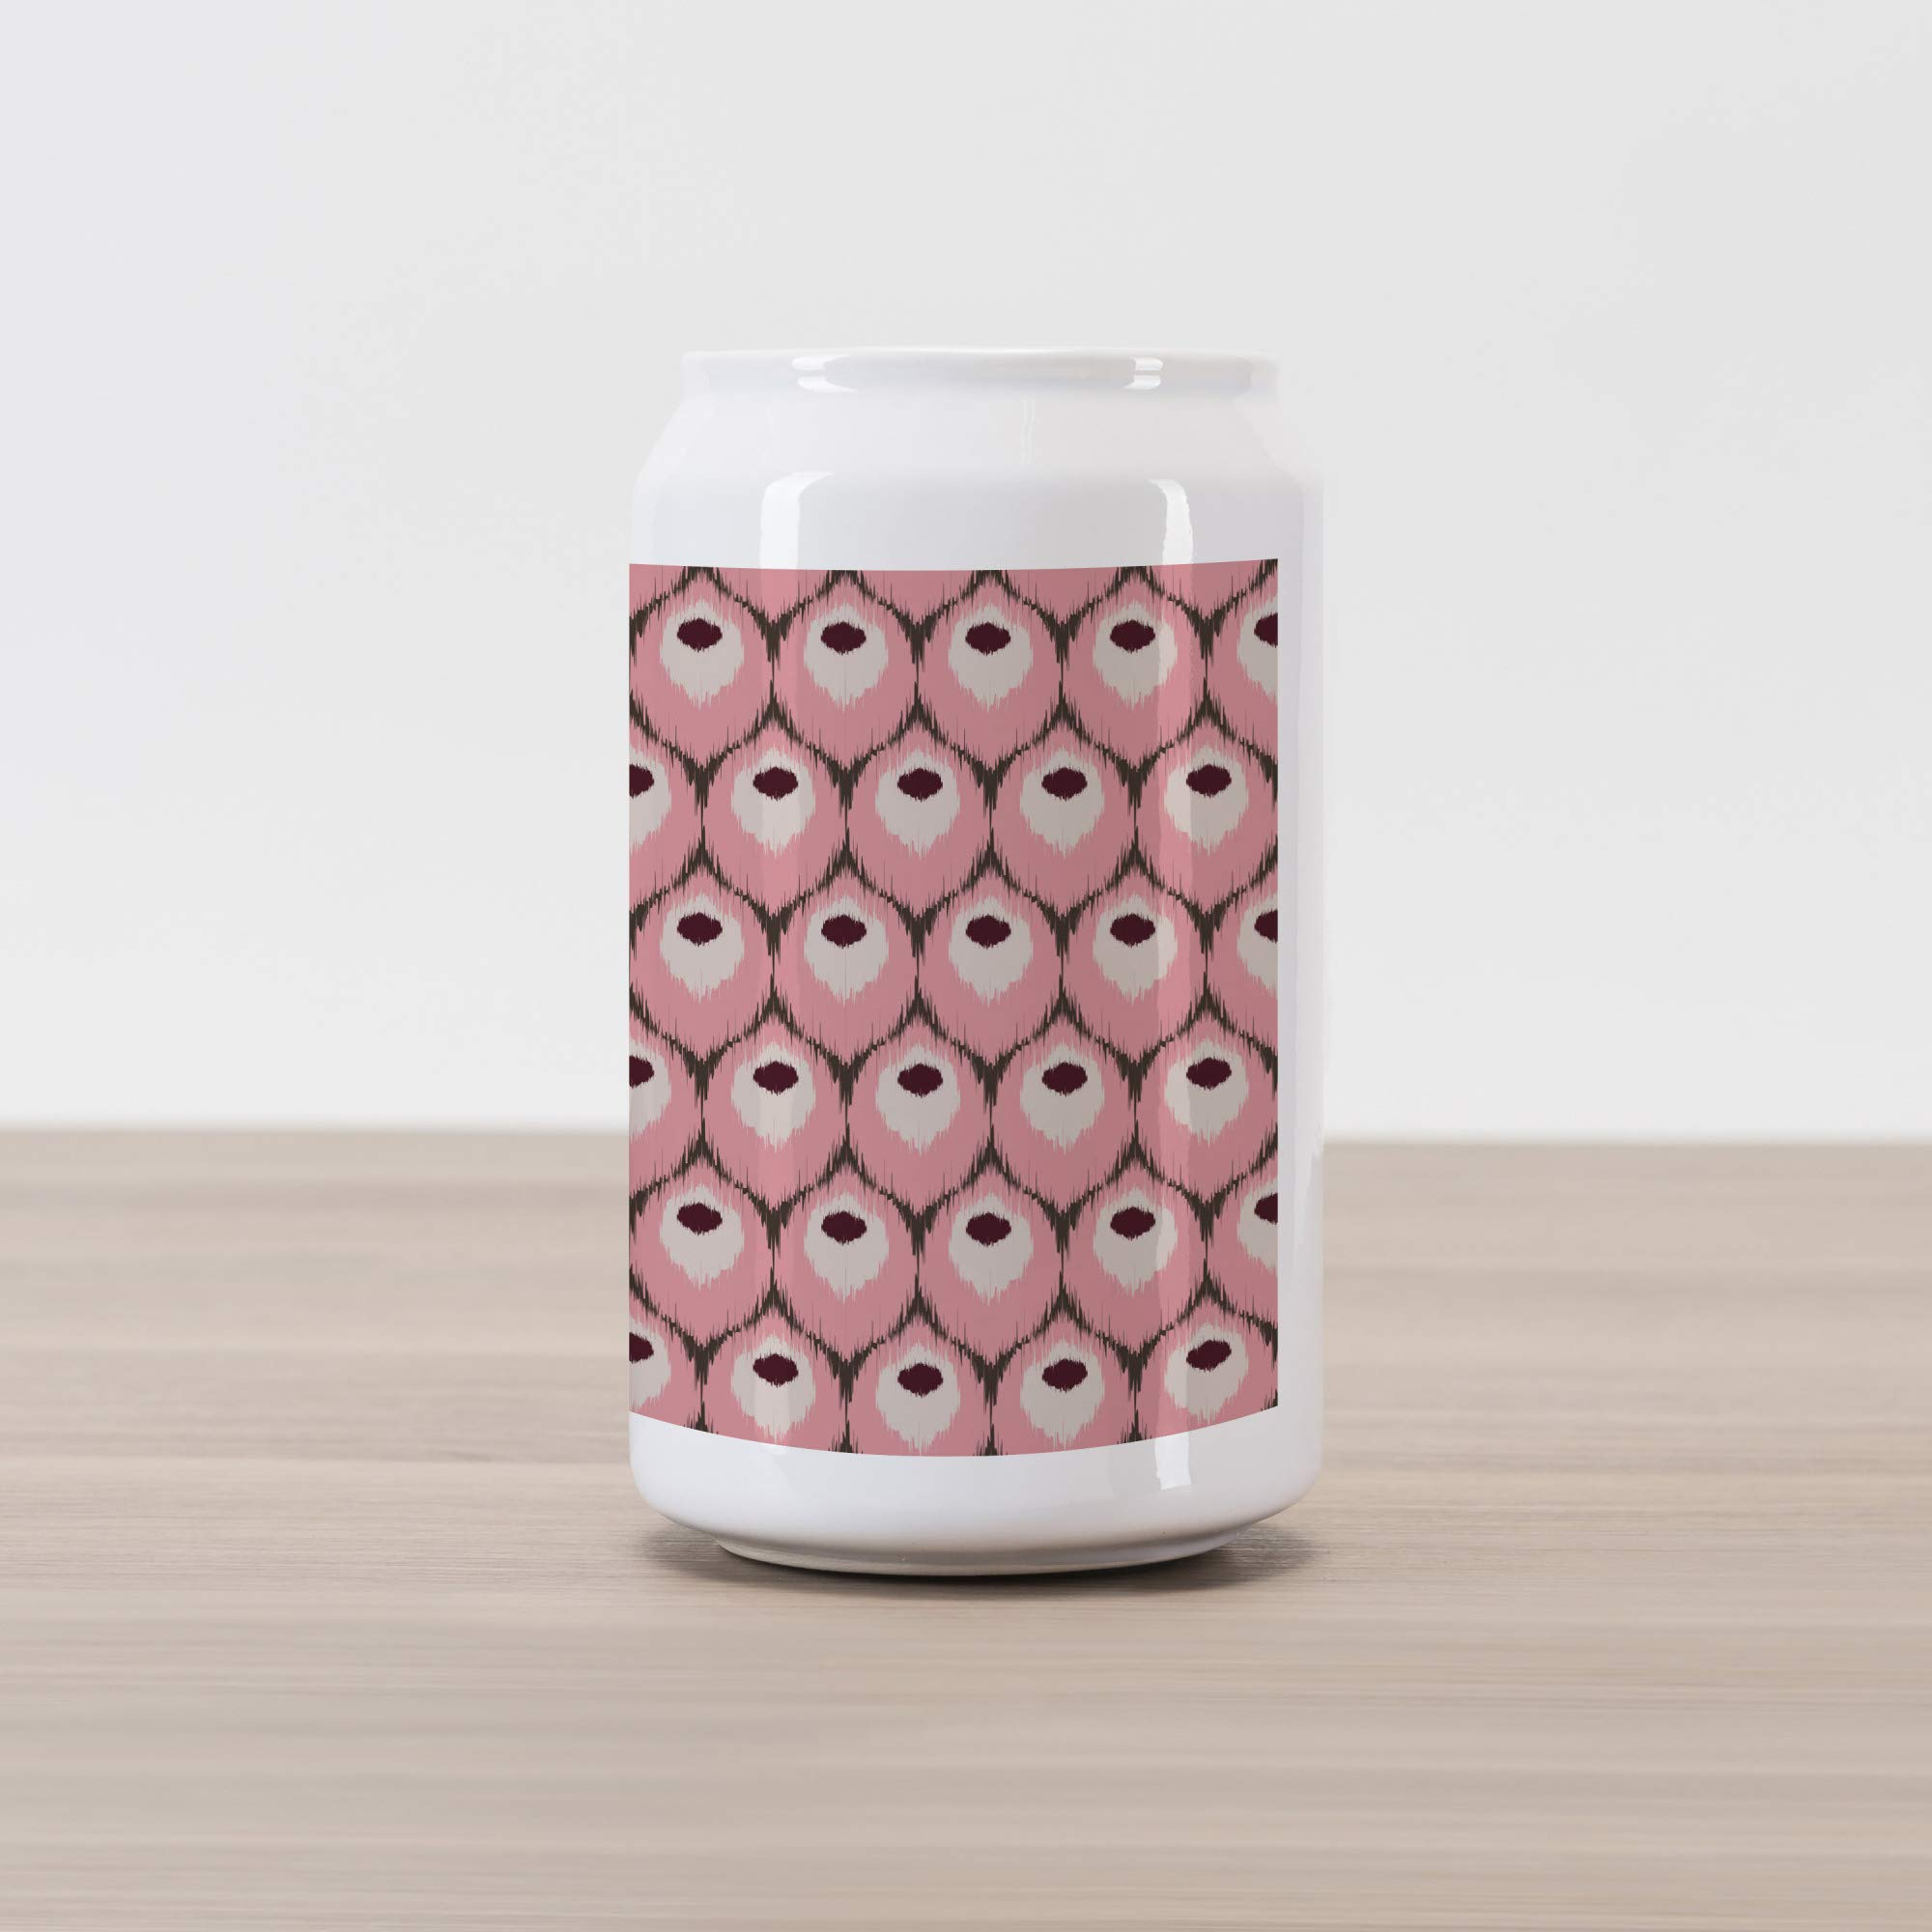 Ambesonne Ikat Cola Can Shape Piggy Bank, Repeating Motifs from Indonesia Culture Classic South East Asia Design, Ceramic Cola Shaped Coin Box Money Bank for Cash Saving, Pale Pink Purple and Brown